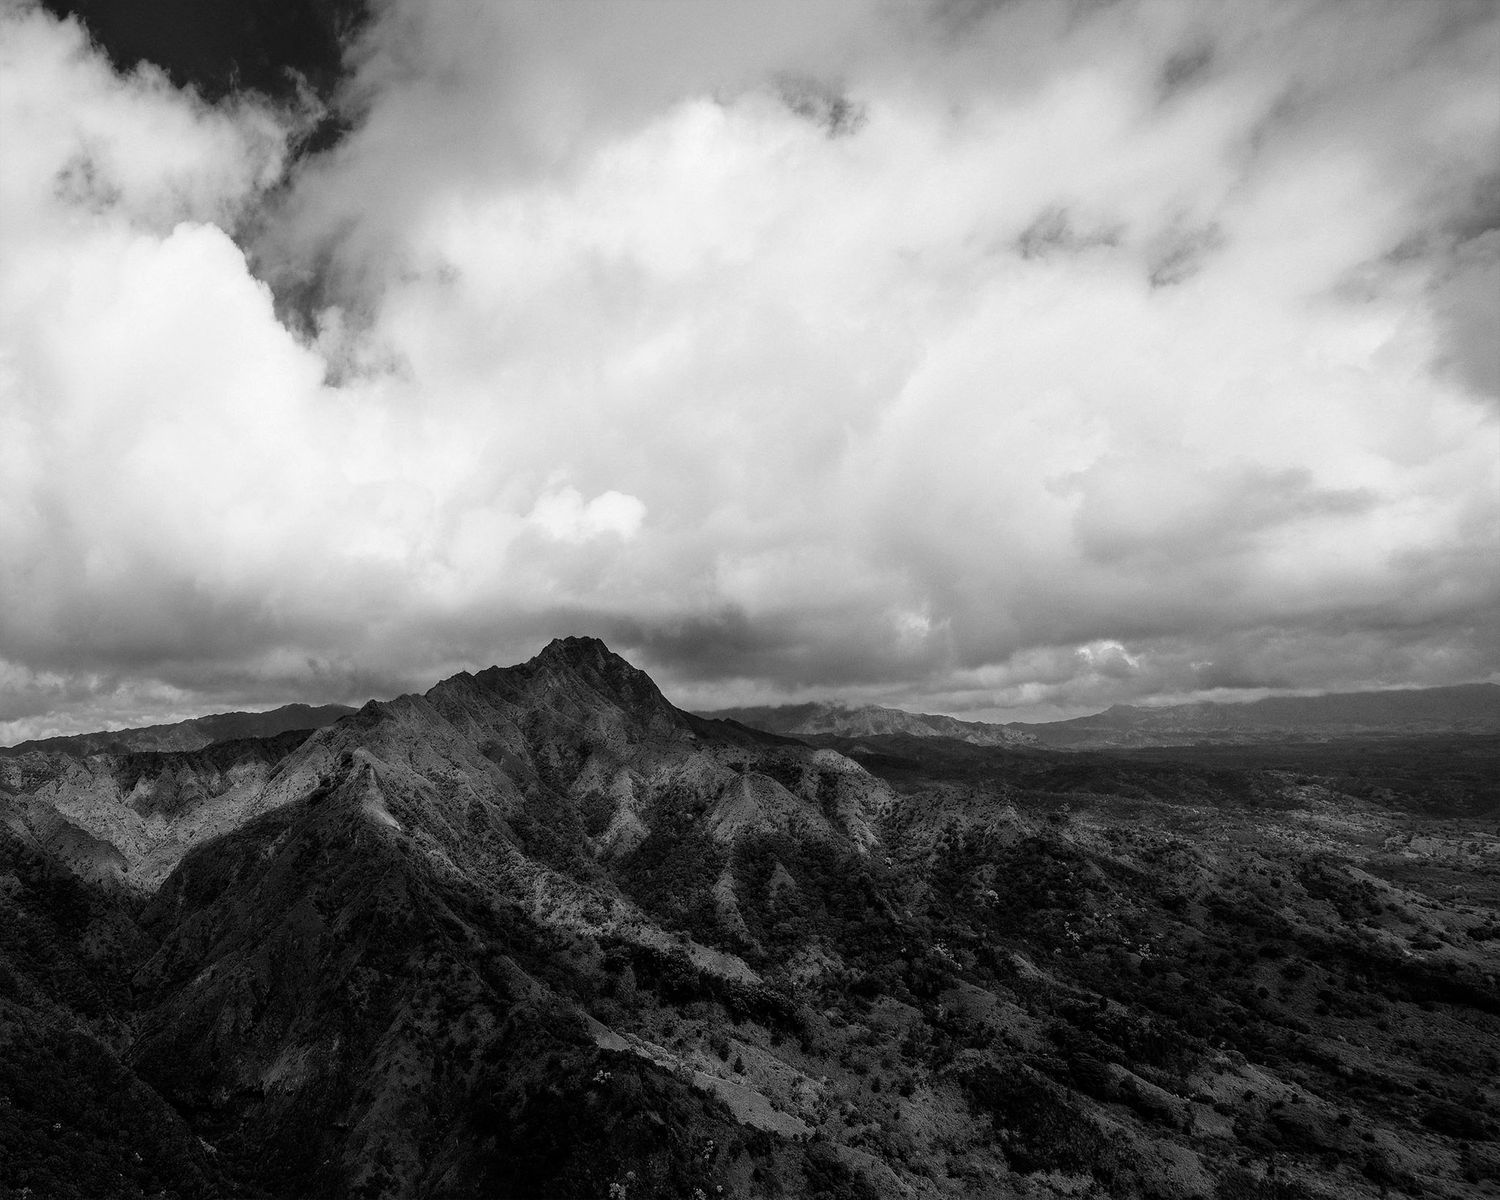 Black and white image of Hawaiian Mountain with clouds